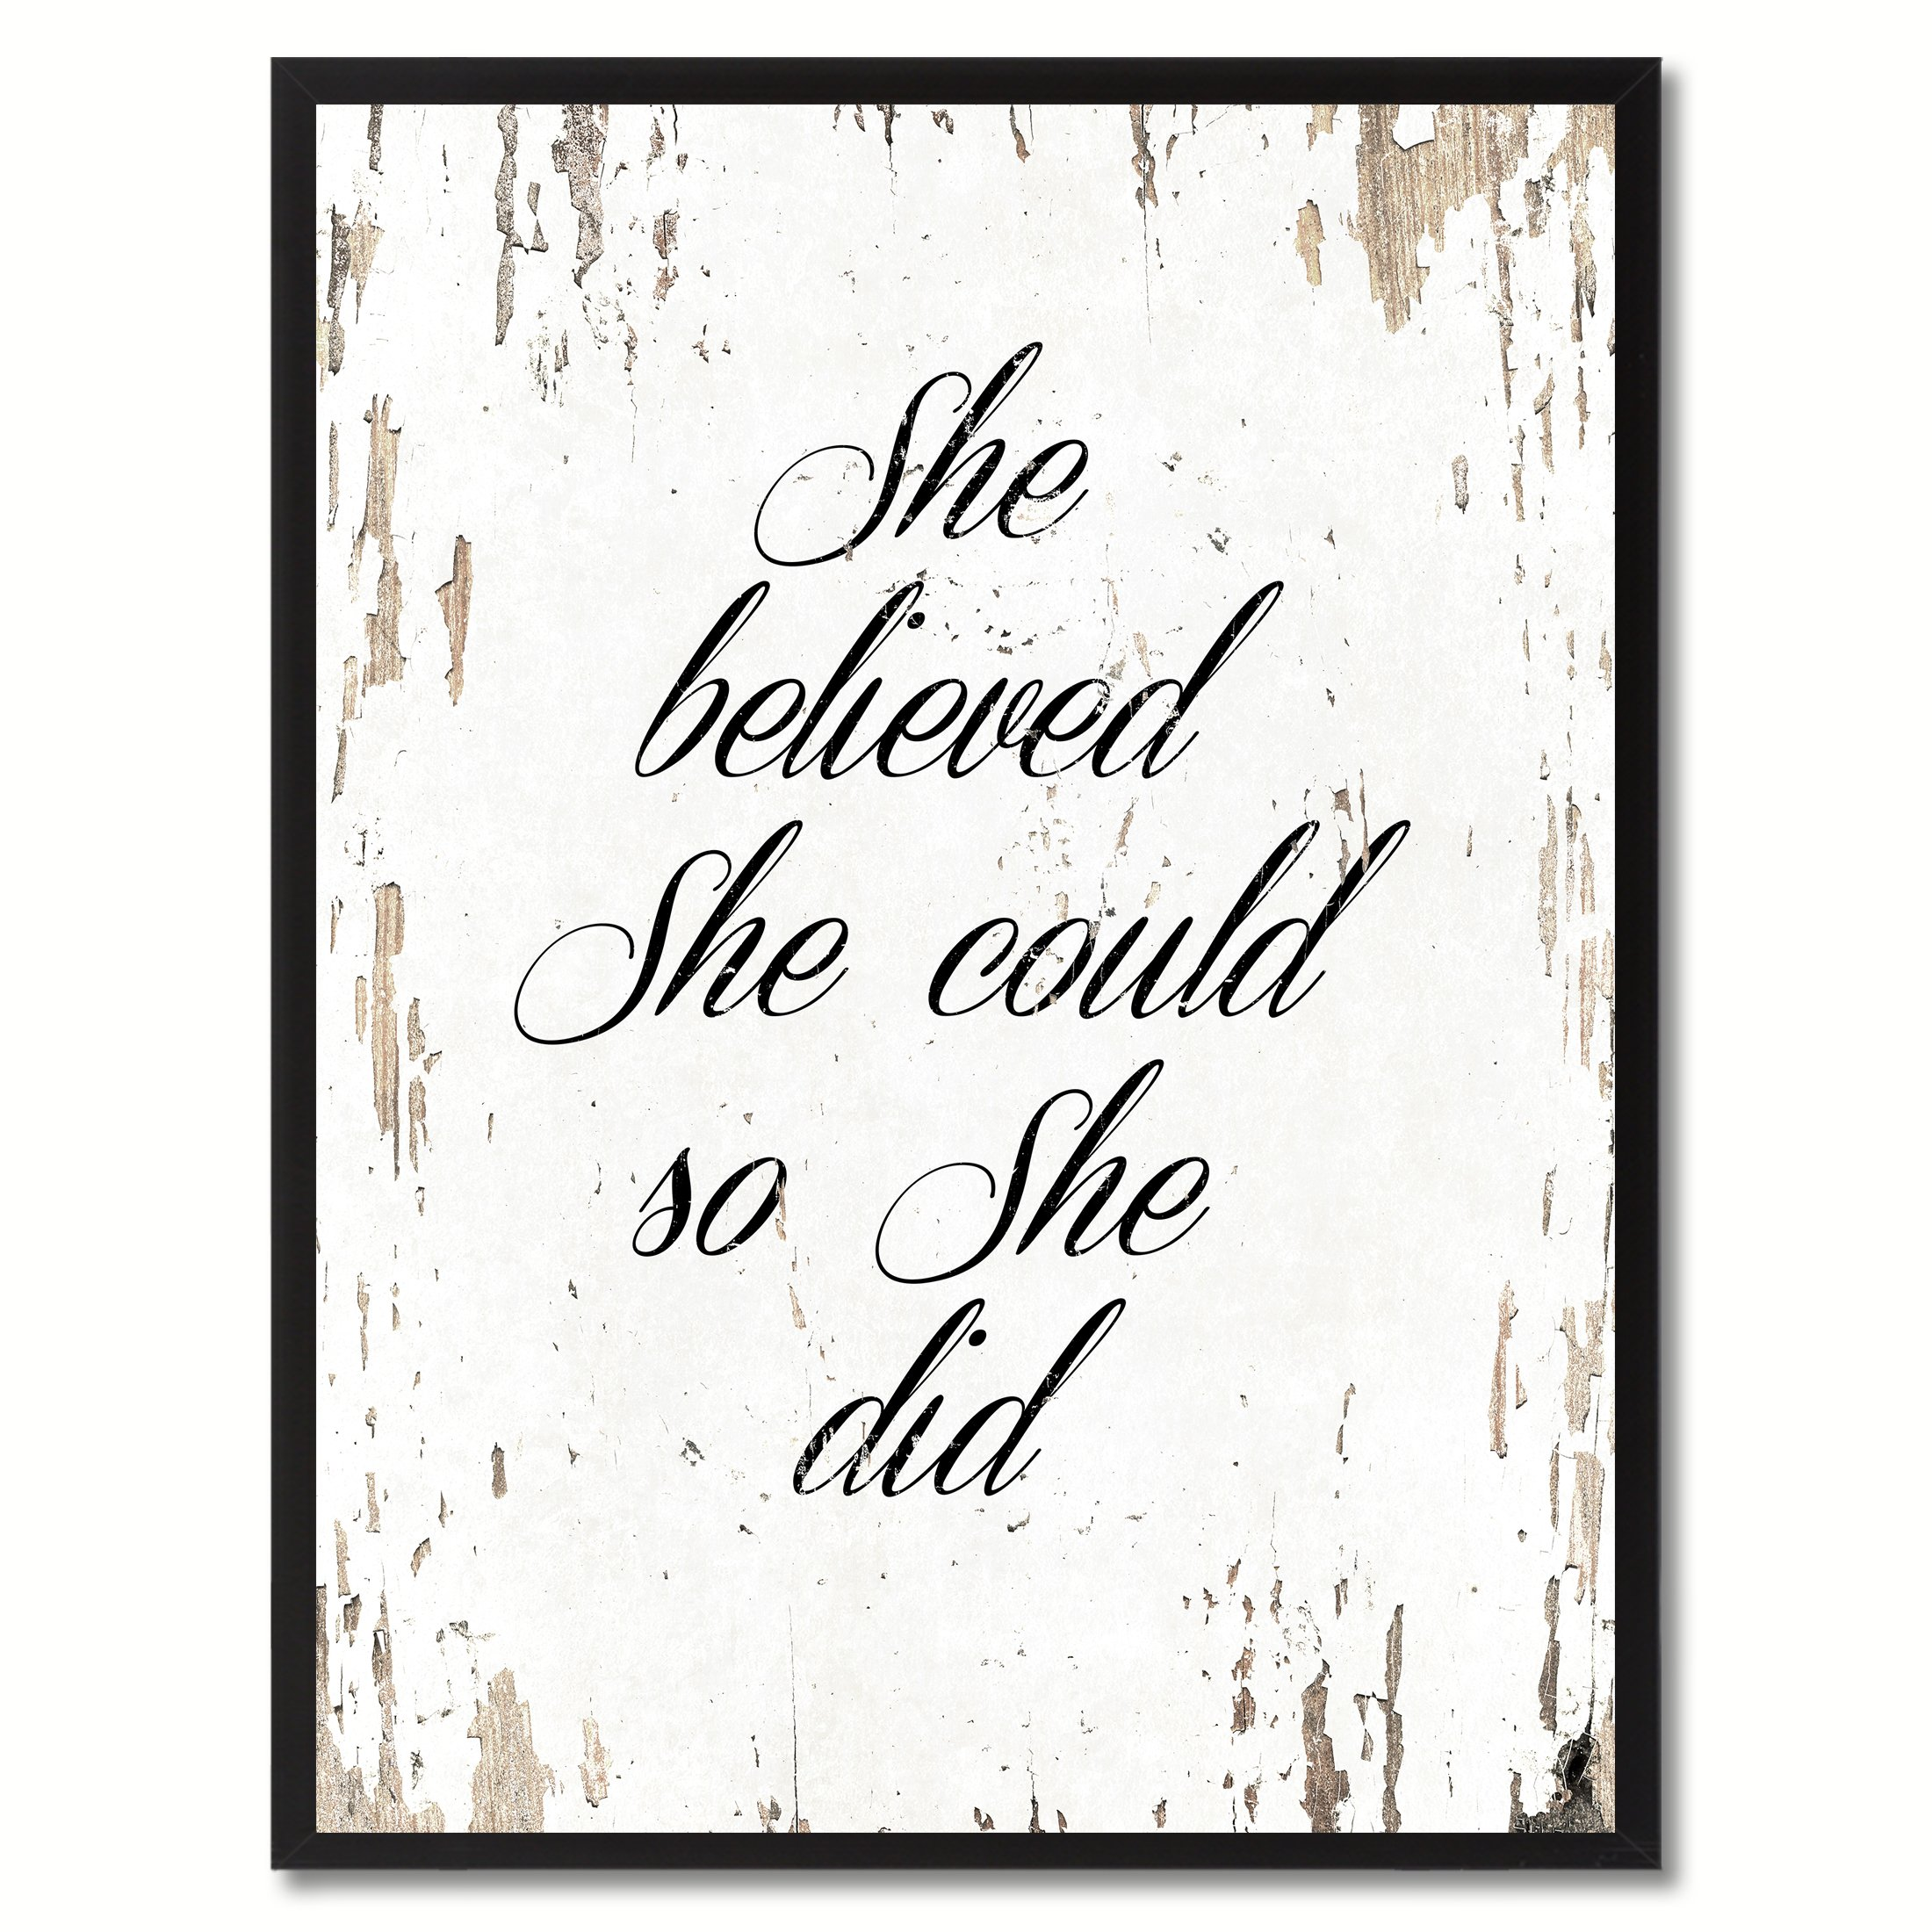 She Believed She Could So She Did Quote Saying Canvas Print Home Decor Wall Art Gift Ideas, Black Picture Frame, White, 7'' x 9'' by SpotColorArt